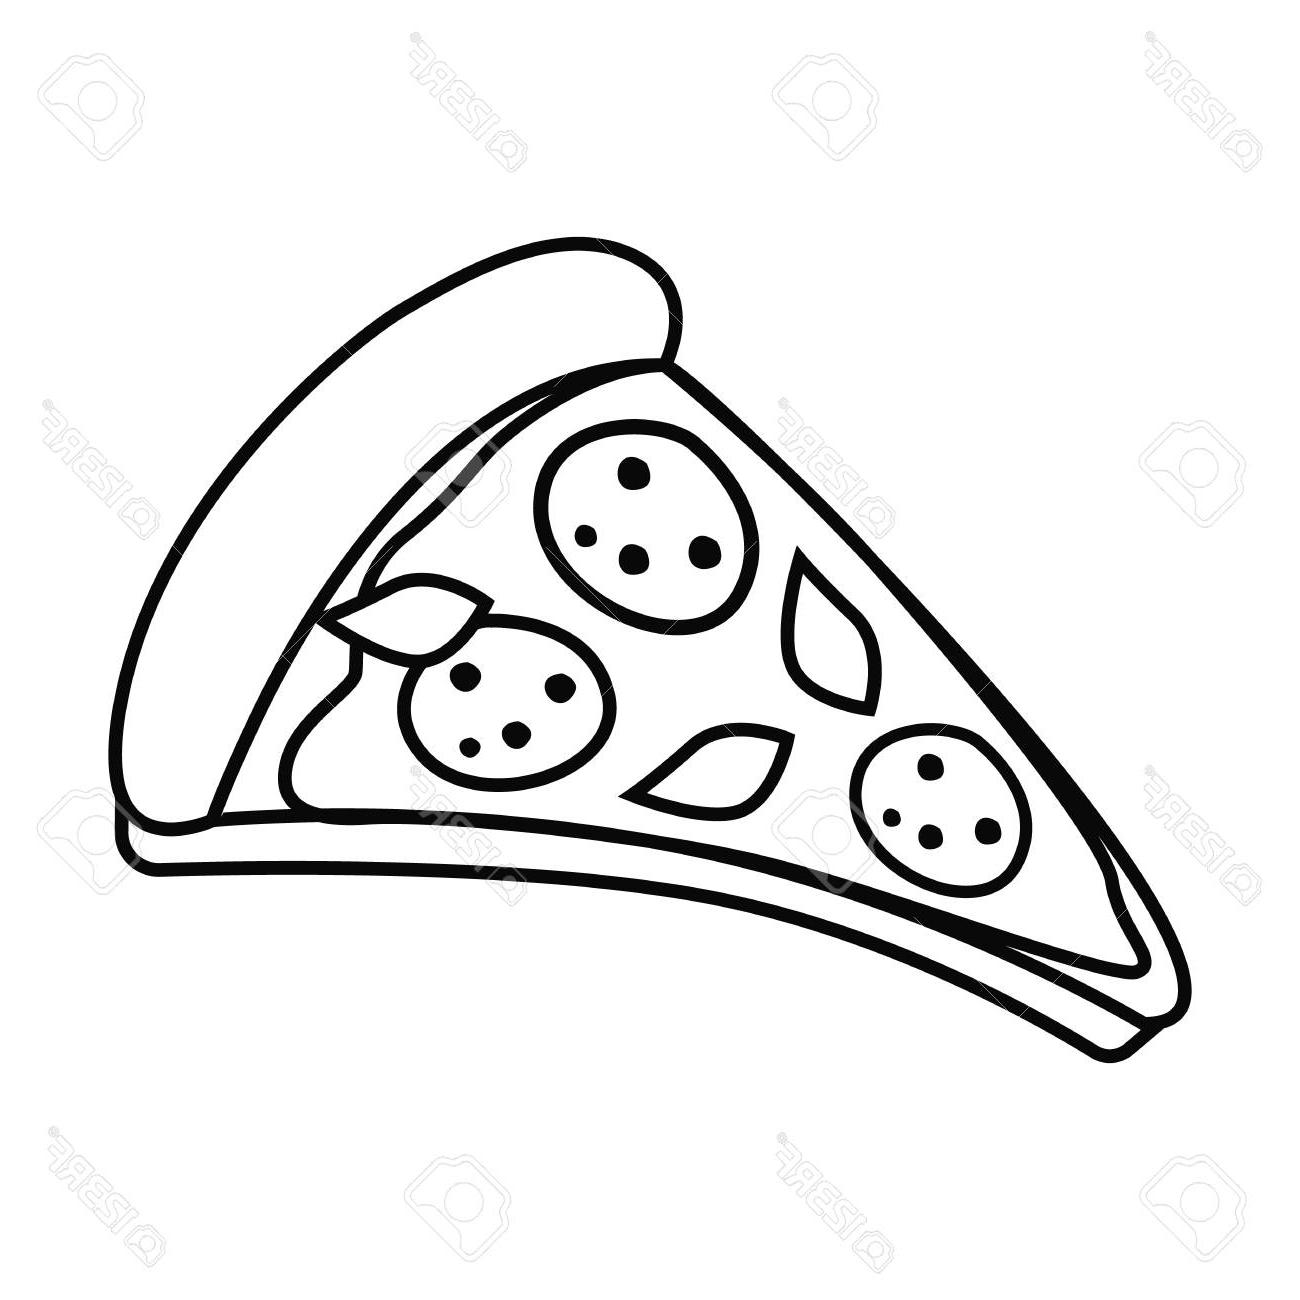 Free clipart pizza black and white picture transparent download Best Free Vector Black And White Pizza Library » Free Vector Art ... picture transparent download